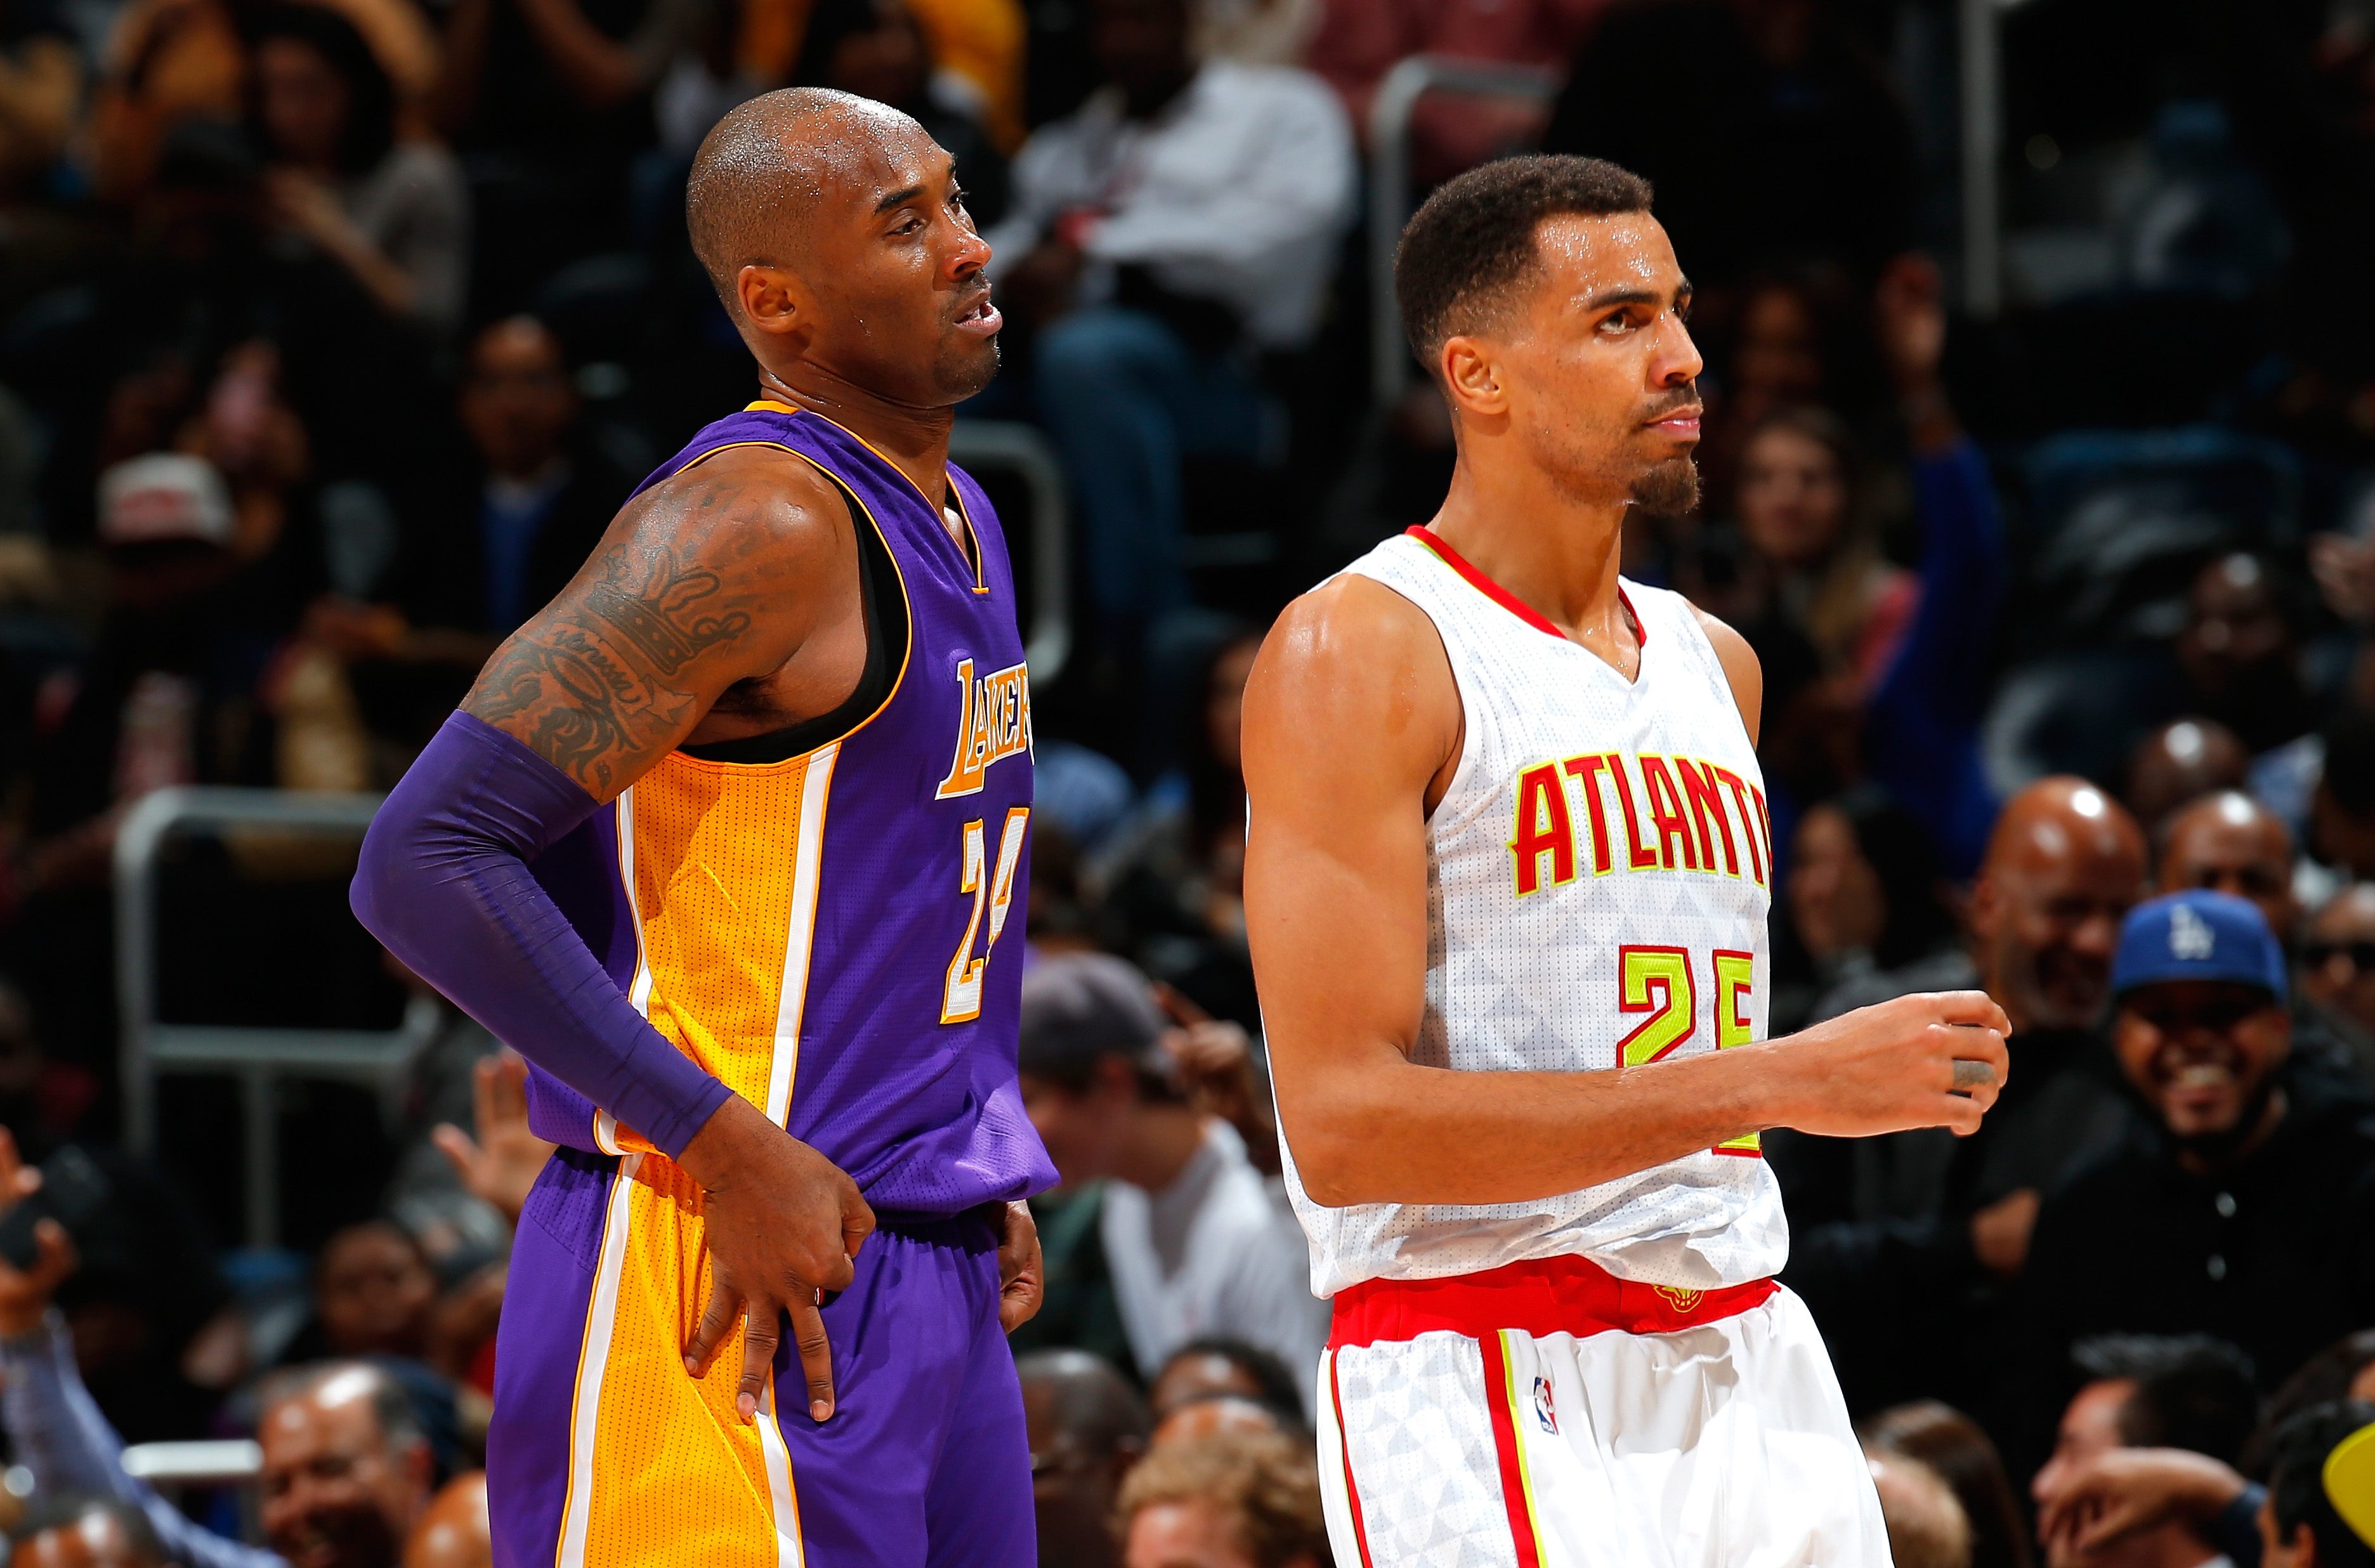 ATLANTA, GA - DECEMBER 04:  Kobe Bryant #24 of the Los Angeles Lakers reacts after hitting a three-point basket against Thabo Sefolosha #25 of the Atlanta Hawks at Philips Arena on December 4, 2015 in Atlanta, Georgia.  NOTE TO USER User expressly acknowl